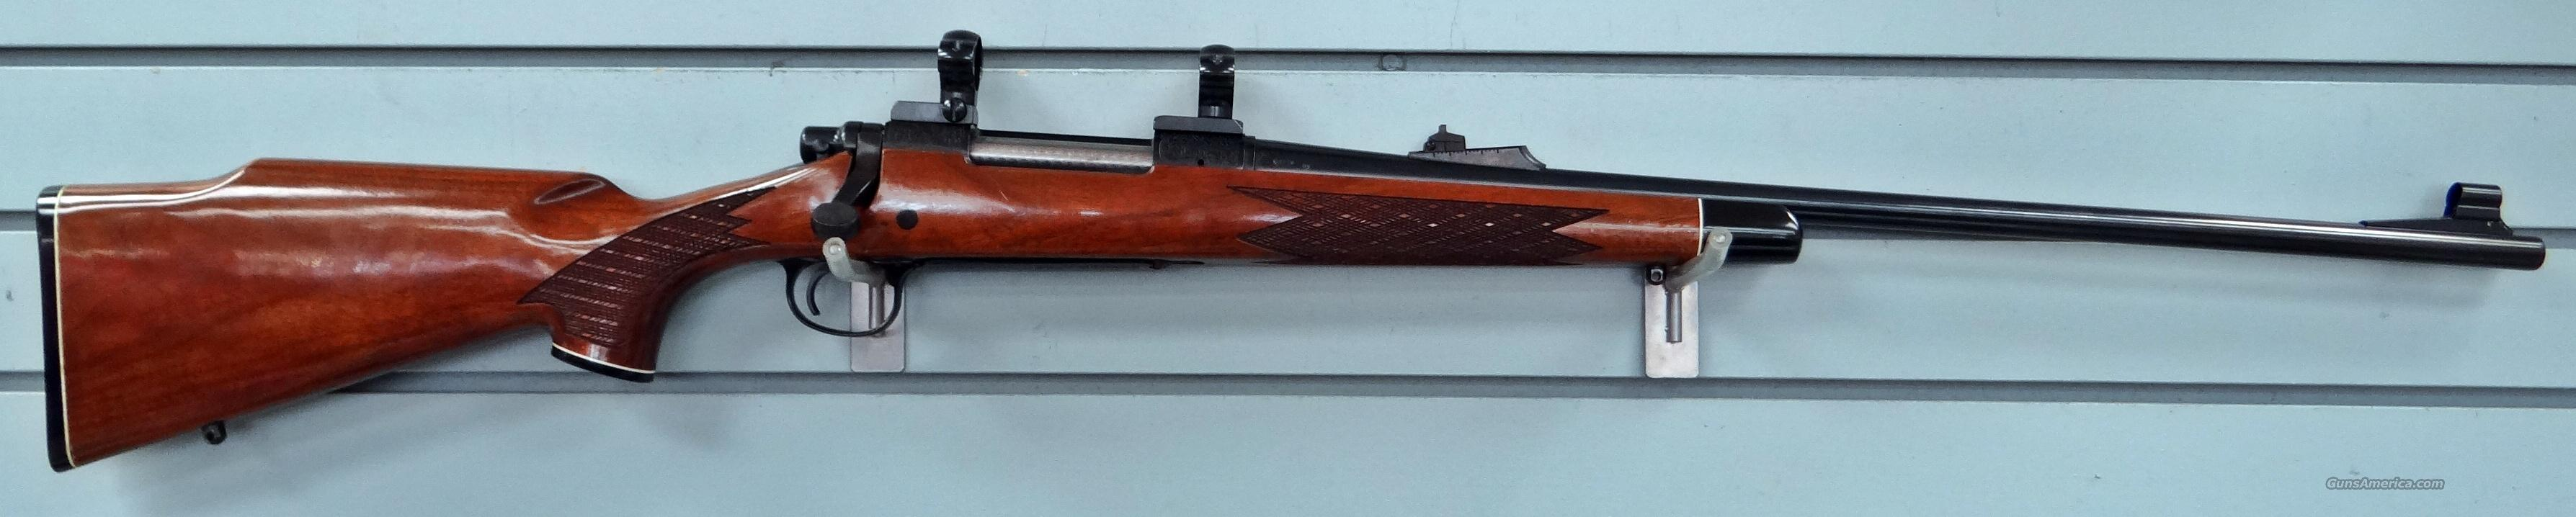 REMINGTON 700BDL ENGRAVED 25-06 REM.  Guns > Rifles > Remington Rifles - Modern > Model 700 > Sporting